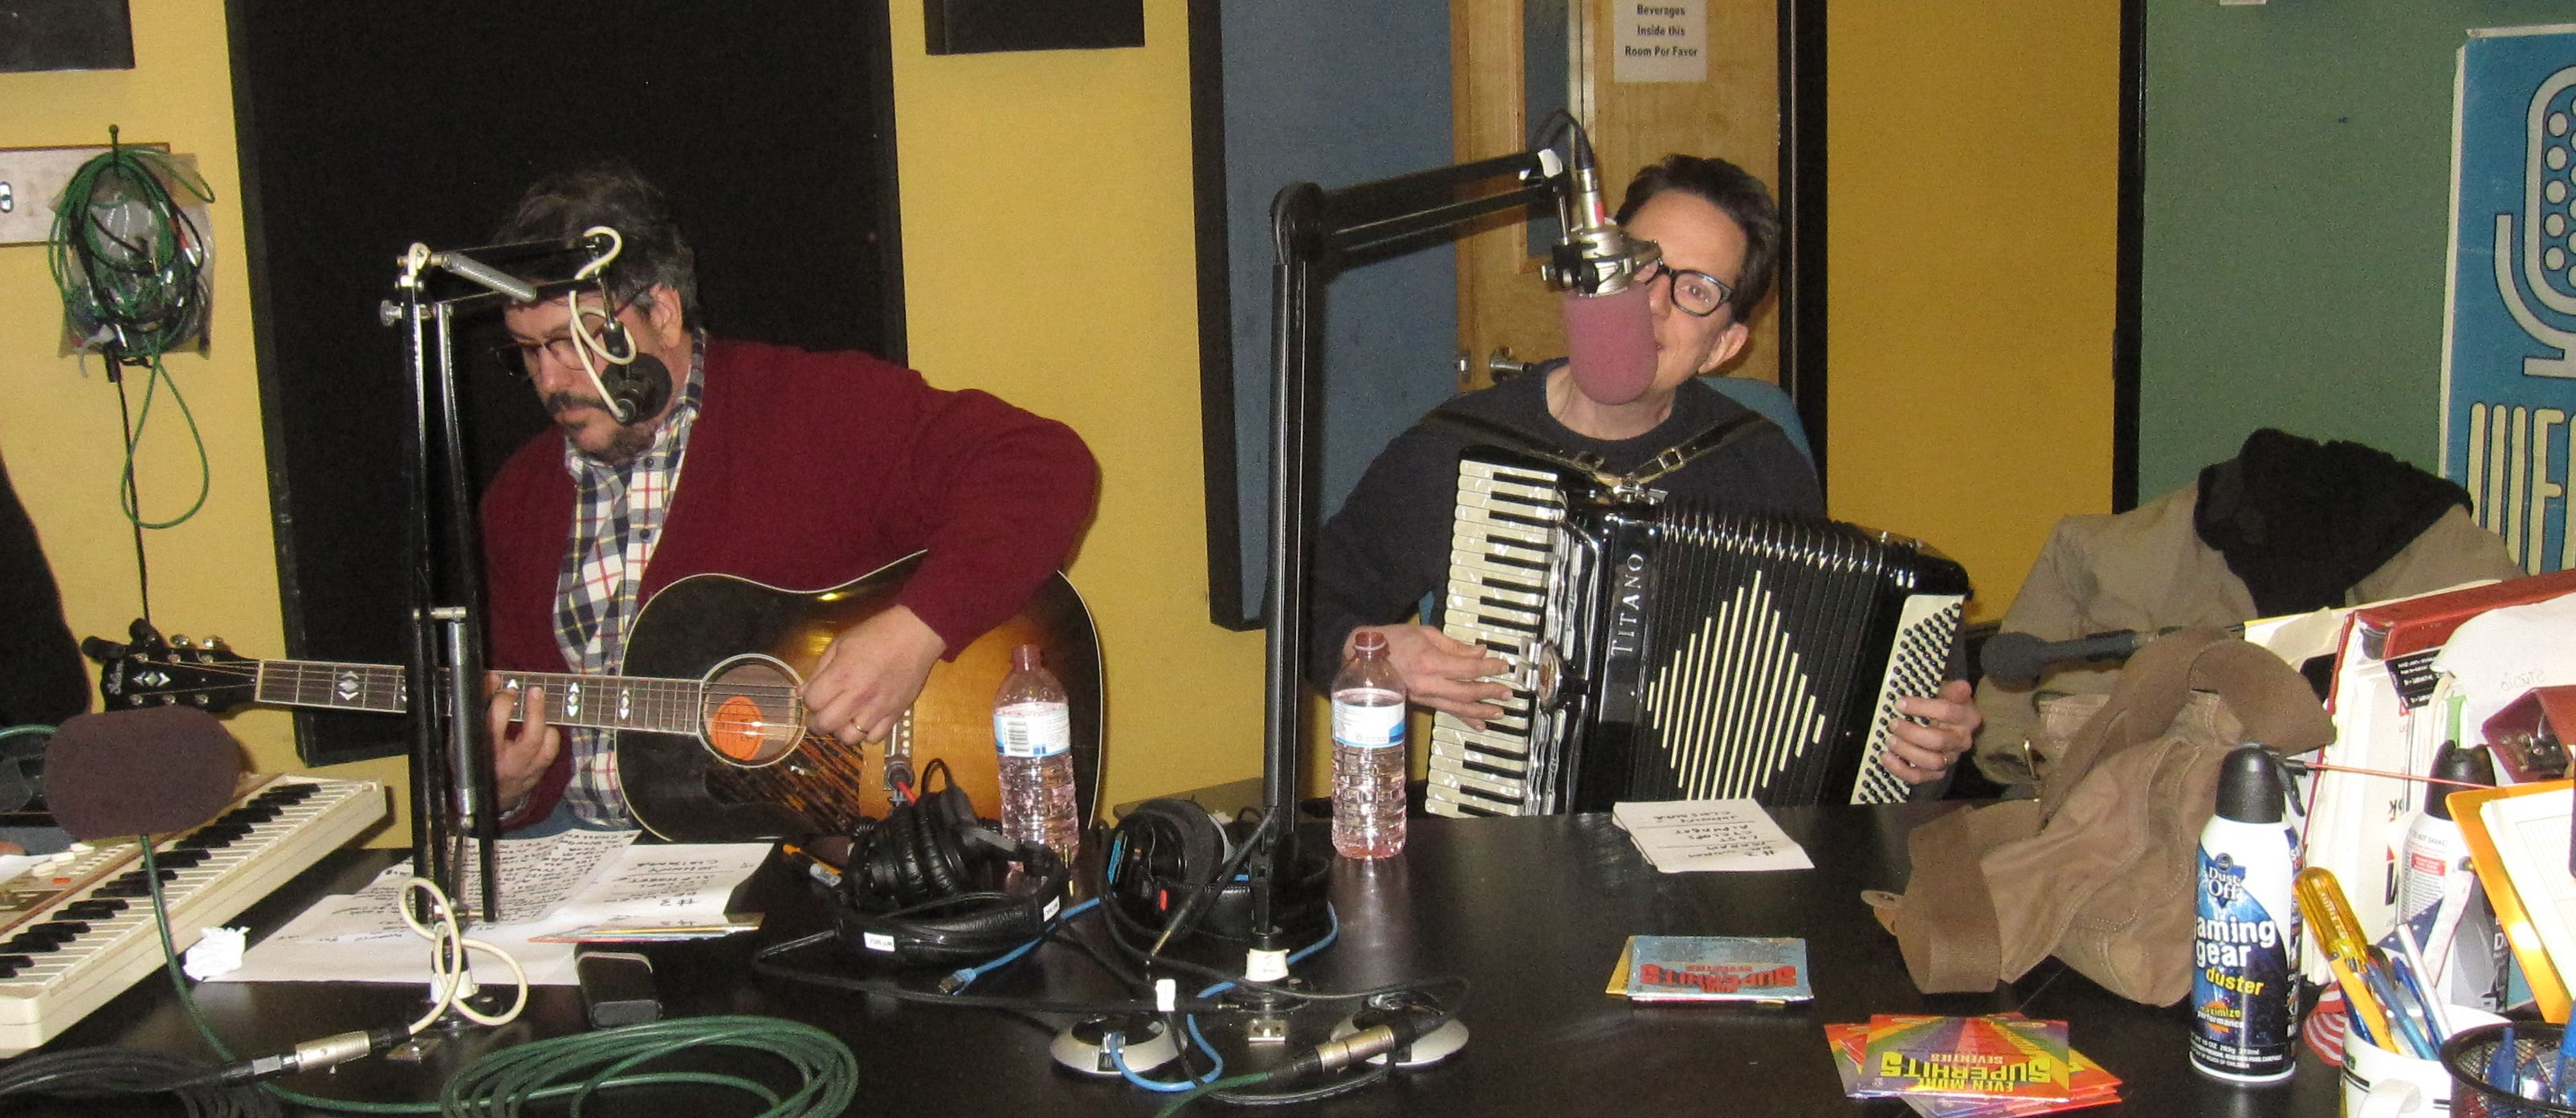 John Linnell, John Flansburgh, Marty Beller of TMBG at WFMU January 10 2015